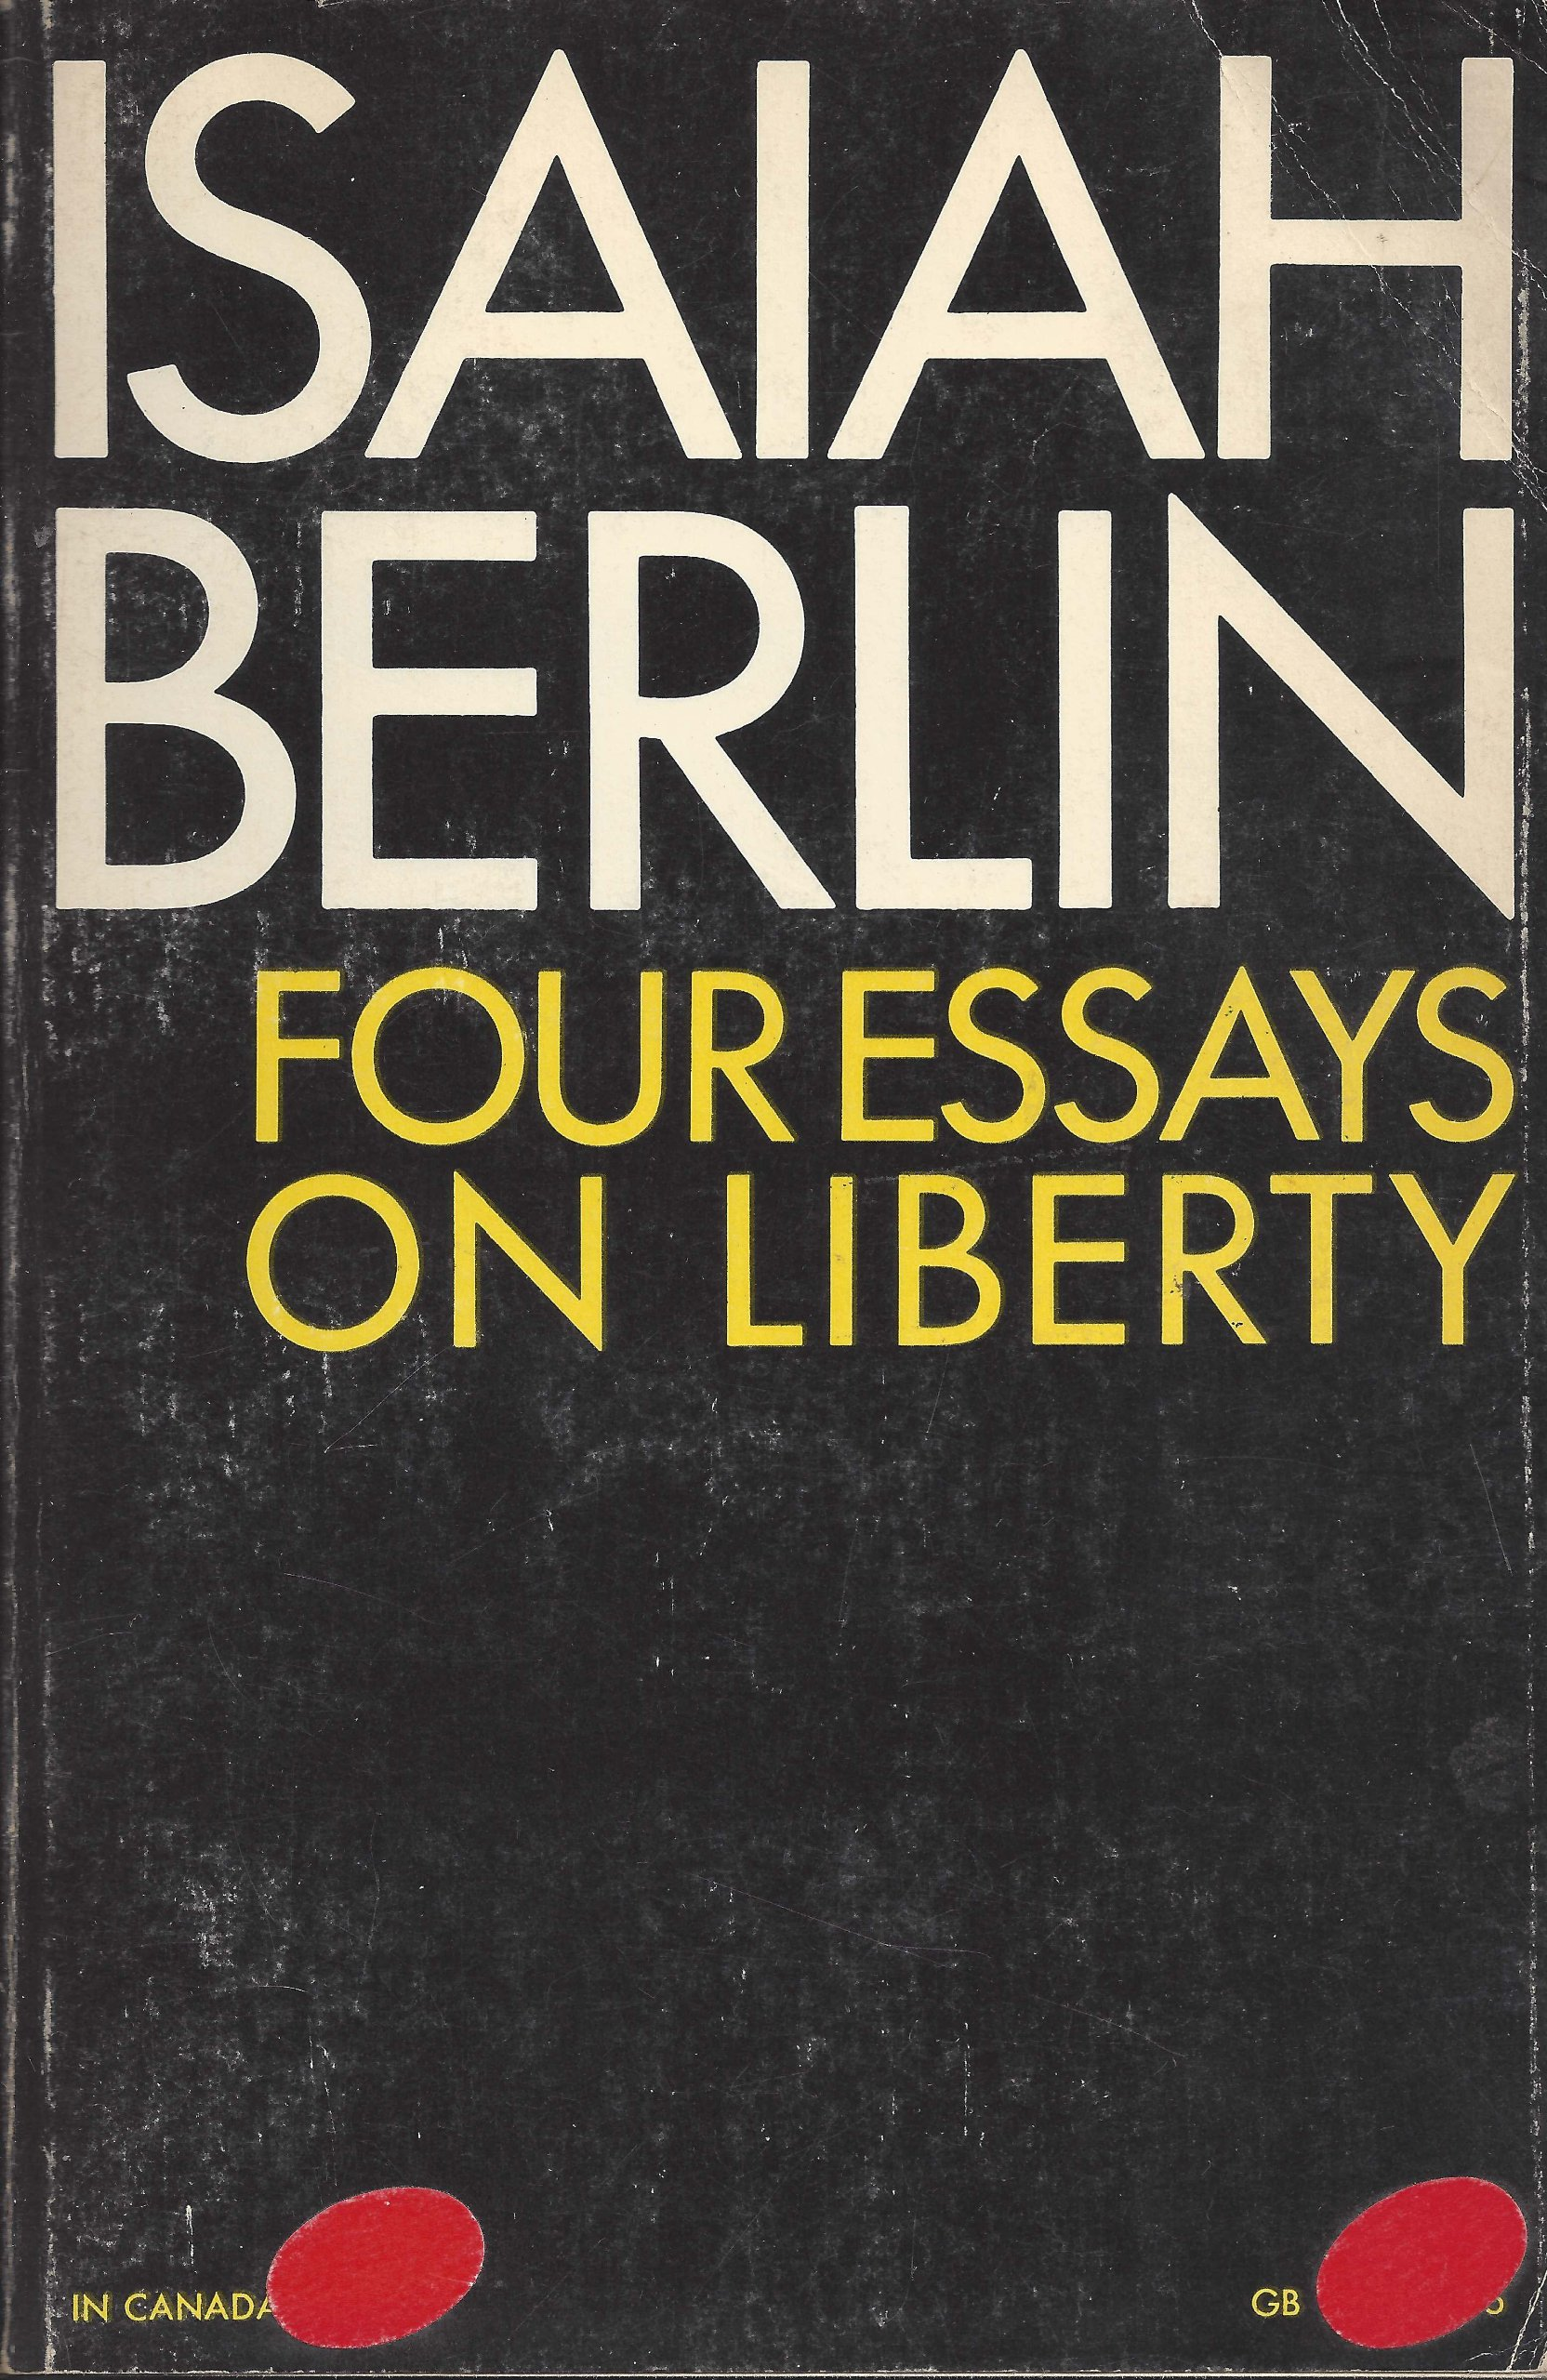 four essays on liberty isaiah berlin 9780195012422 com four essays on liberty isaiah berlin 9780195012422 com books